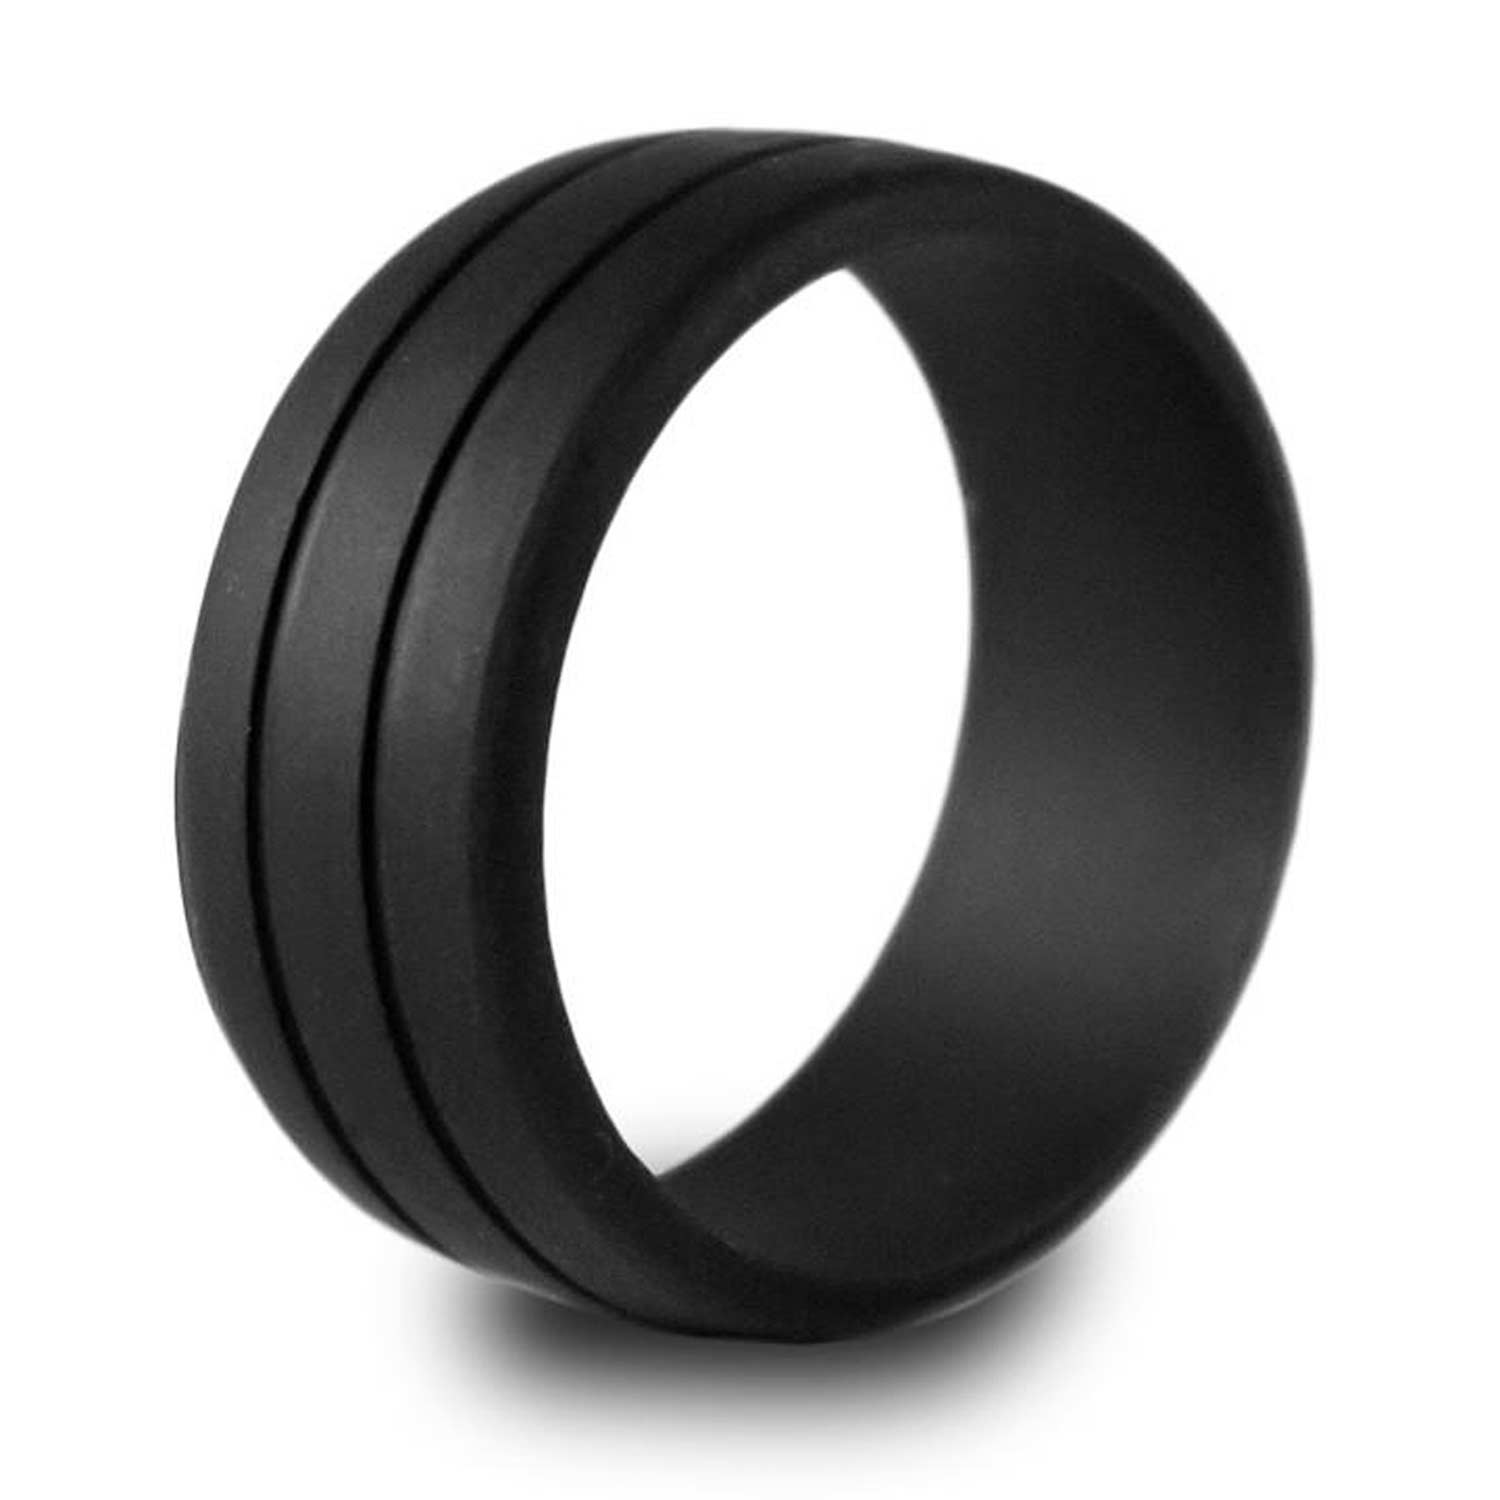 Silicone Wedding Ring.Komfortringz Men S Double Debosed Silicone Wedding Ring